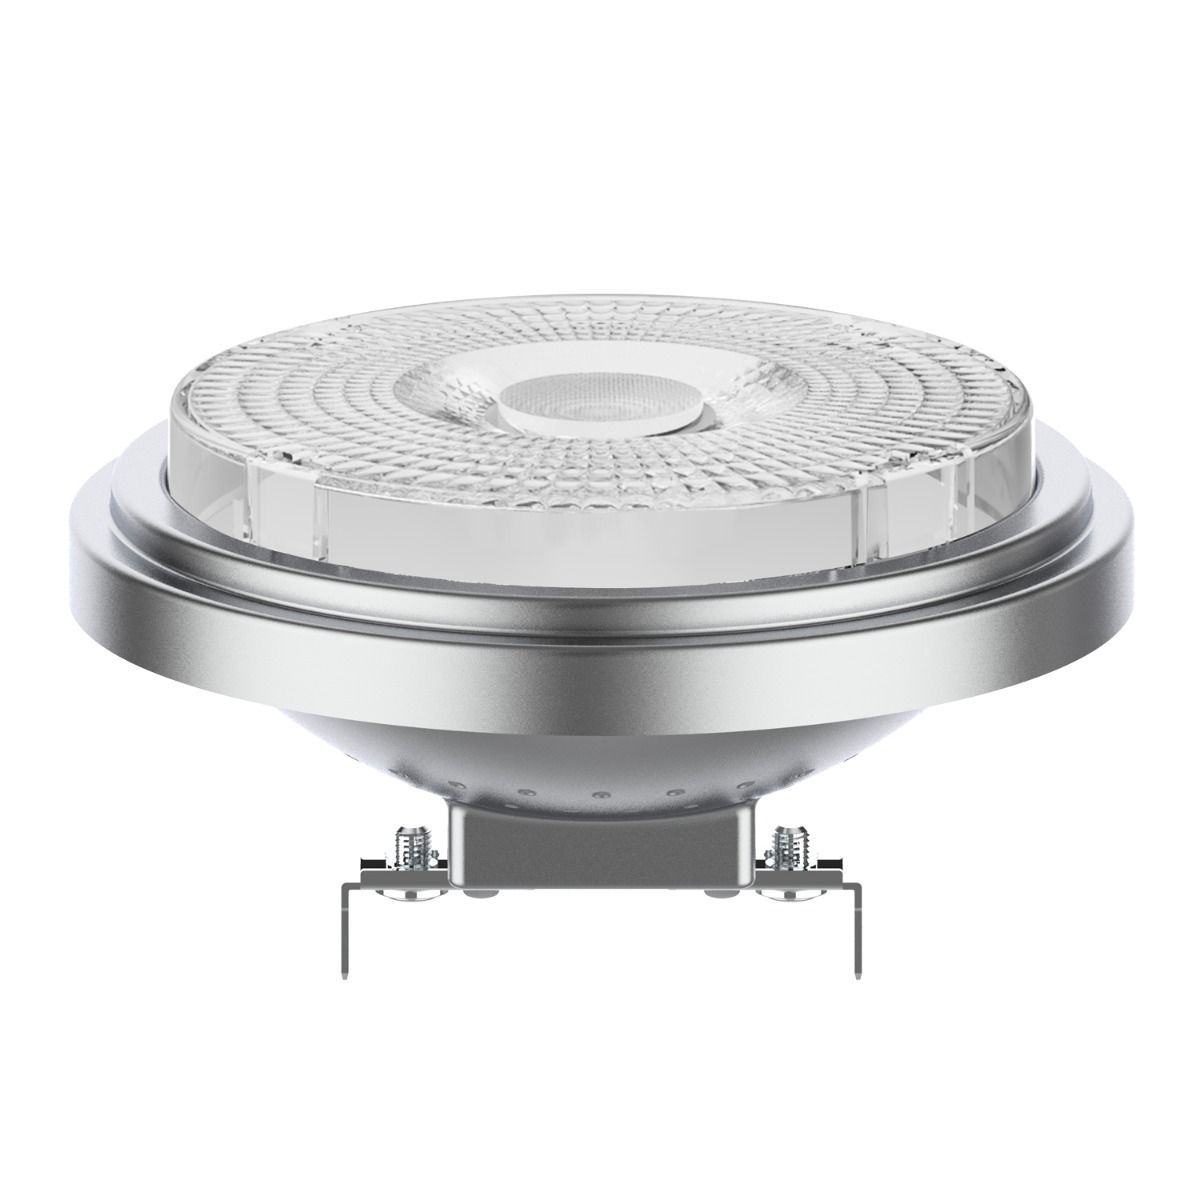 Noxion Lucent LED Spot AR111 G53 12V 7.3W 927 40D | Dimmable - Highest Colour Rendering - Replacer for 50W